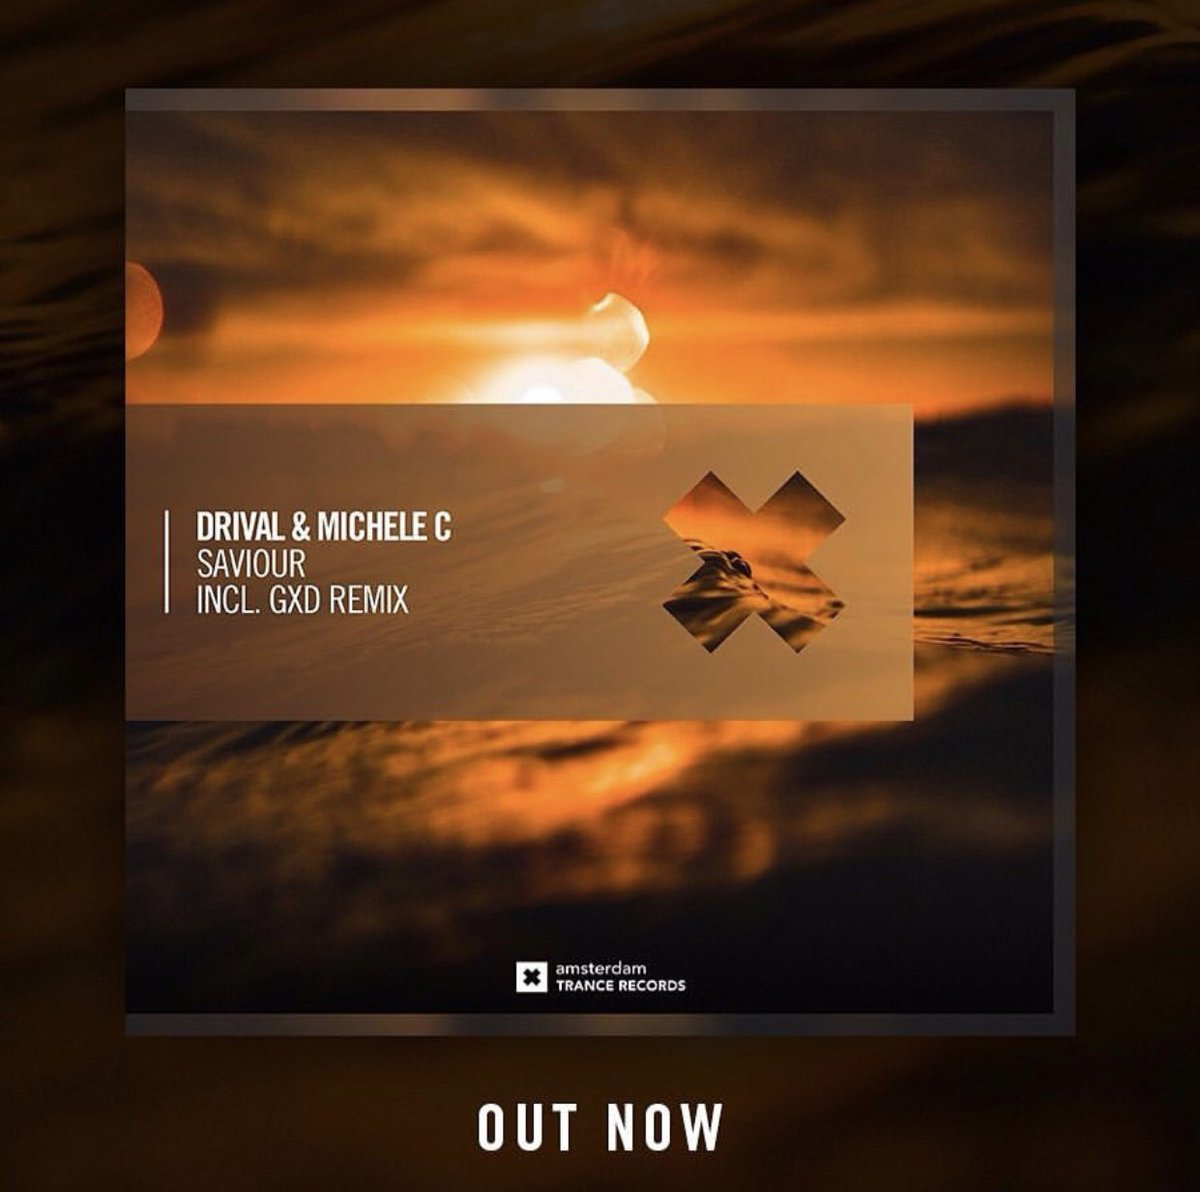 First drop of 2019 and it's double the fun 👯Pre order or stream now on https://t.co/juUWBgEr3i or Spotify 🎉  @AmsterdamTrance  @DrivalDJ  @GXD_Music  #Trance #uplifting #Amsterdamtrance https://t.co/ysHSvO44em